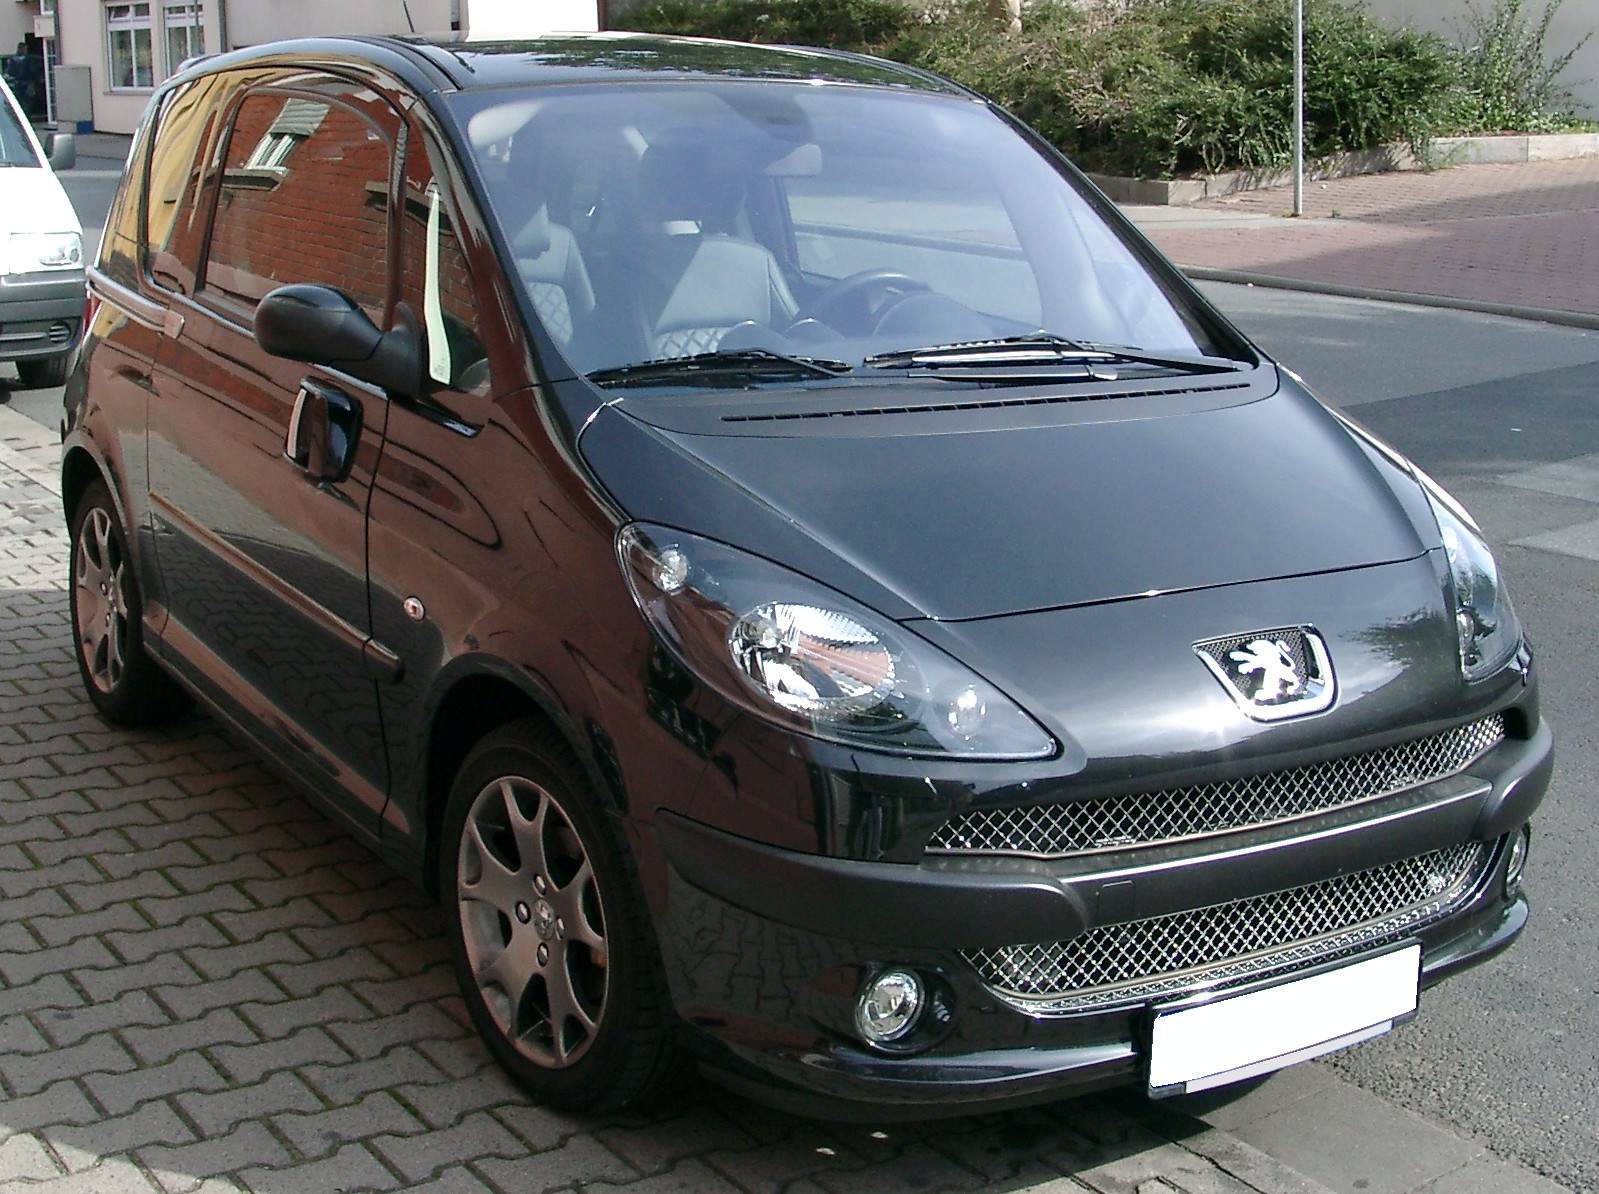 file peugeot 1007 front wikimedia commons. Black Bedroom Furniture Sets. Home Design Ideas